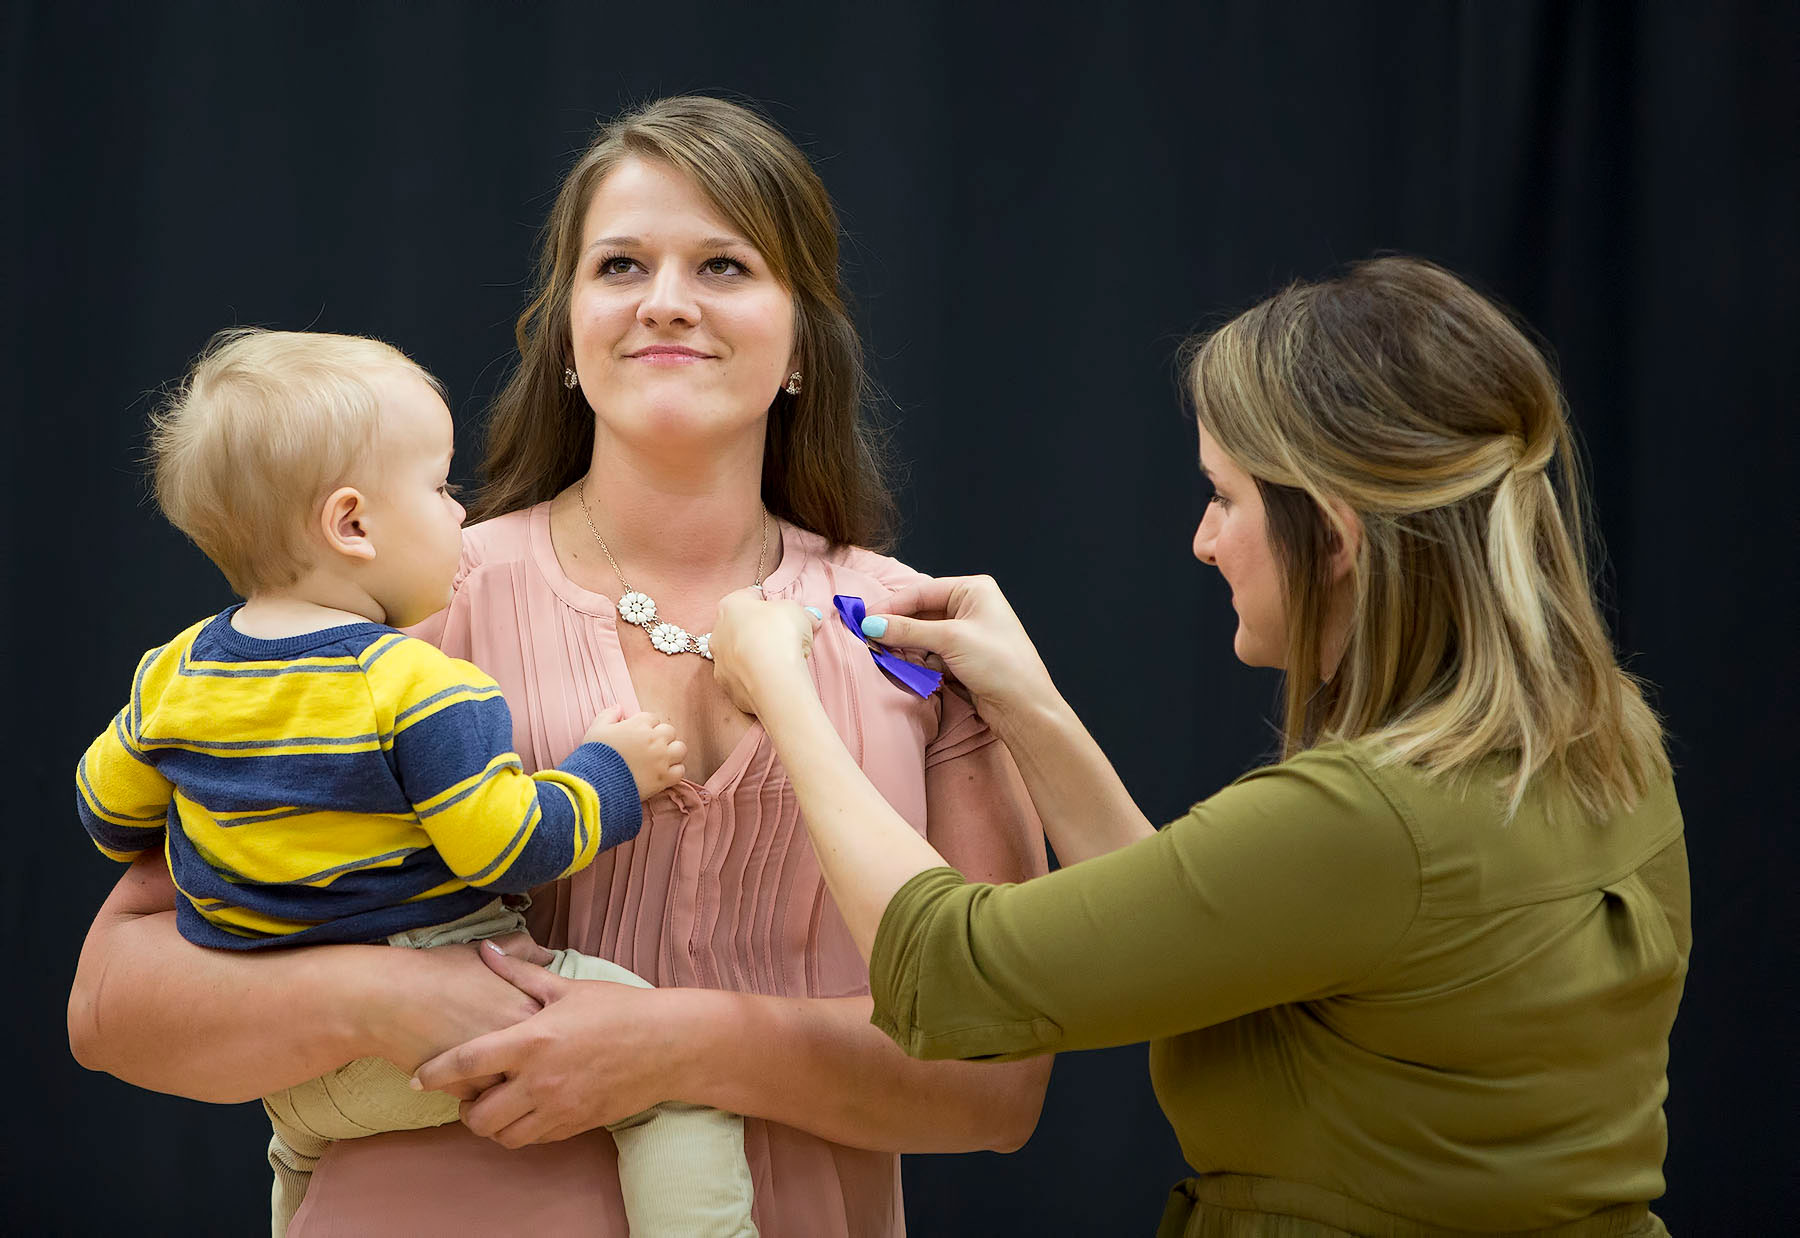 Each spring, Carroll College holds pinning ceremony as a symbolic welcoming of newly graduated nurses into the nursing profession.